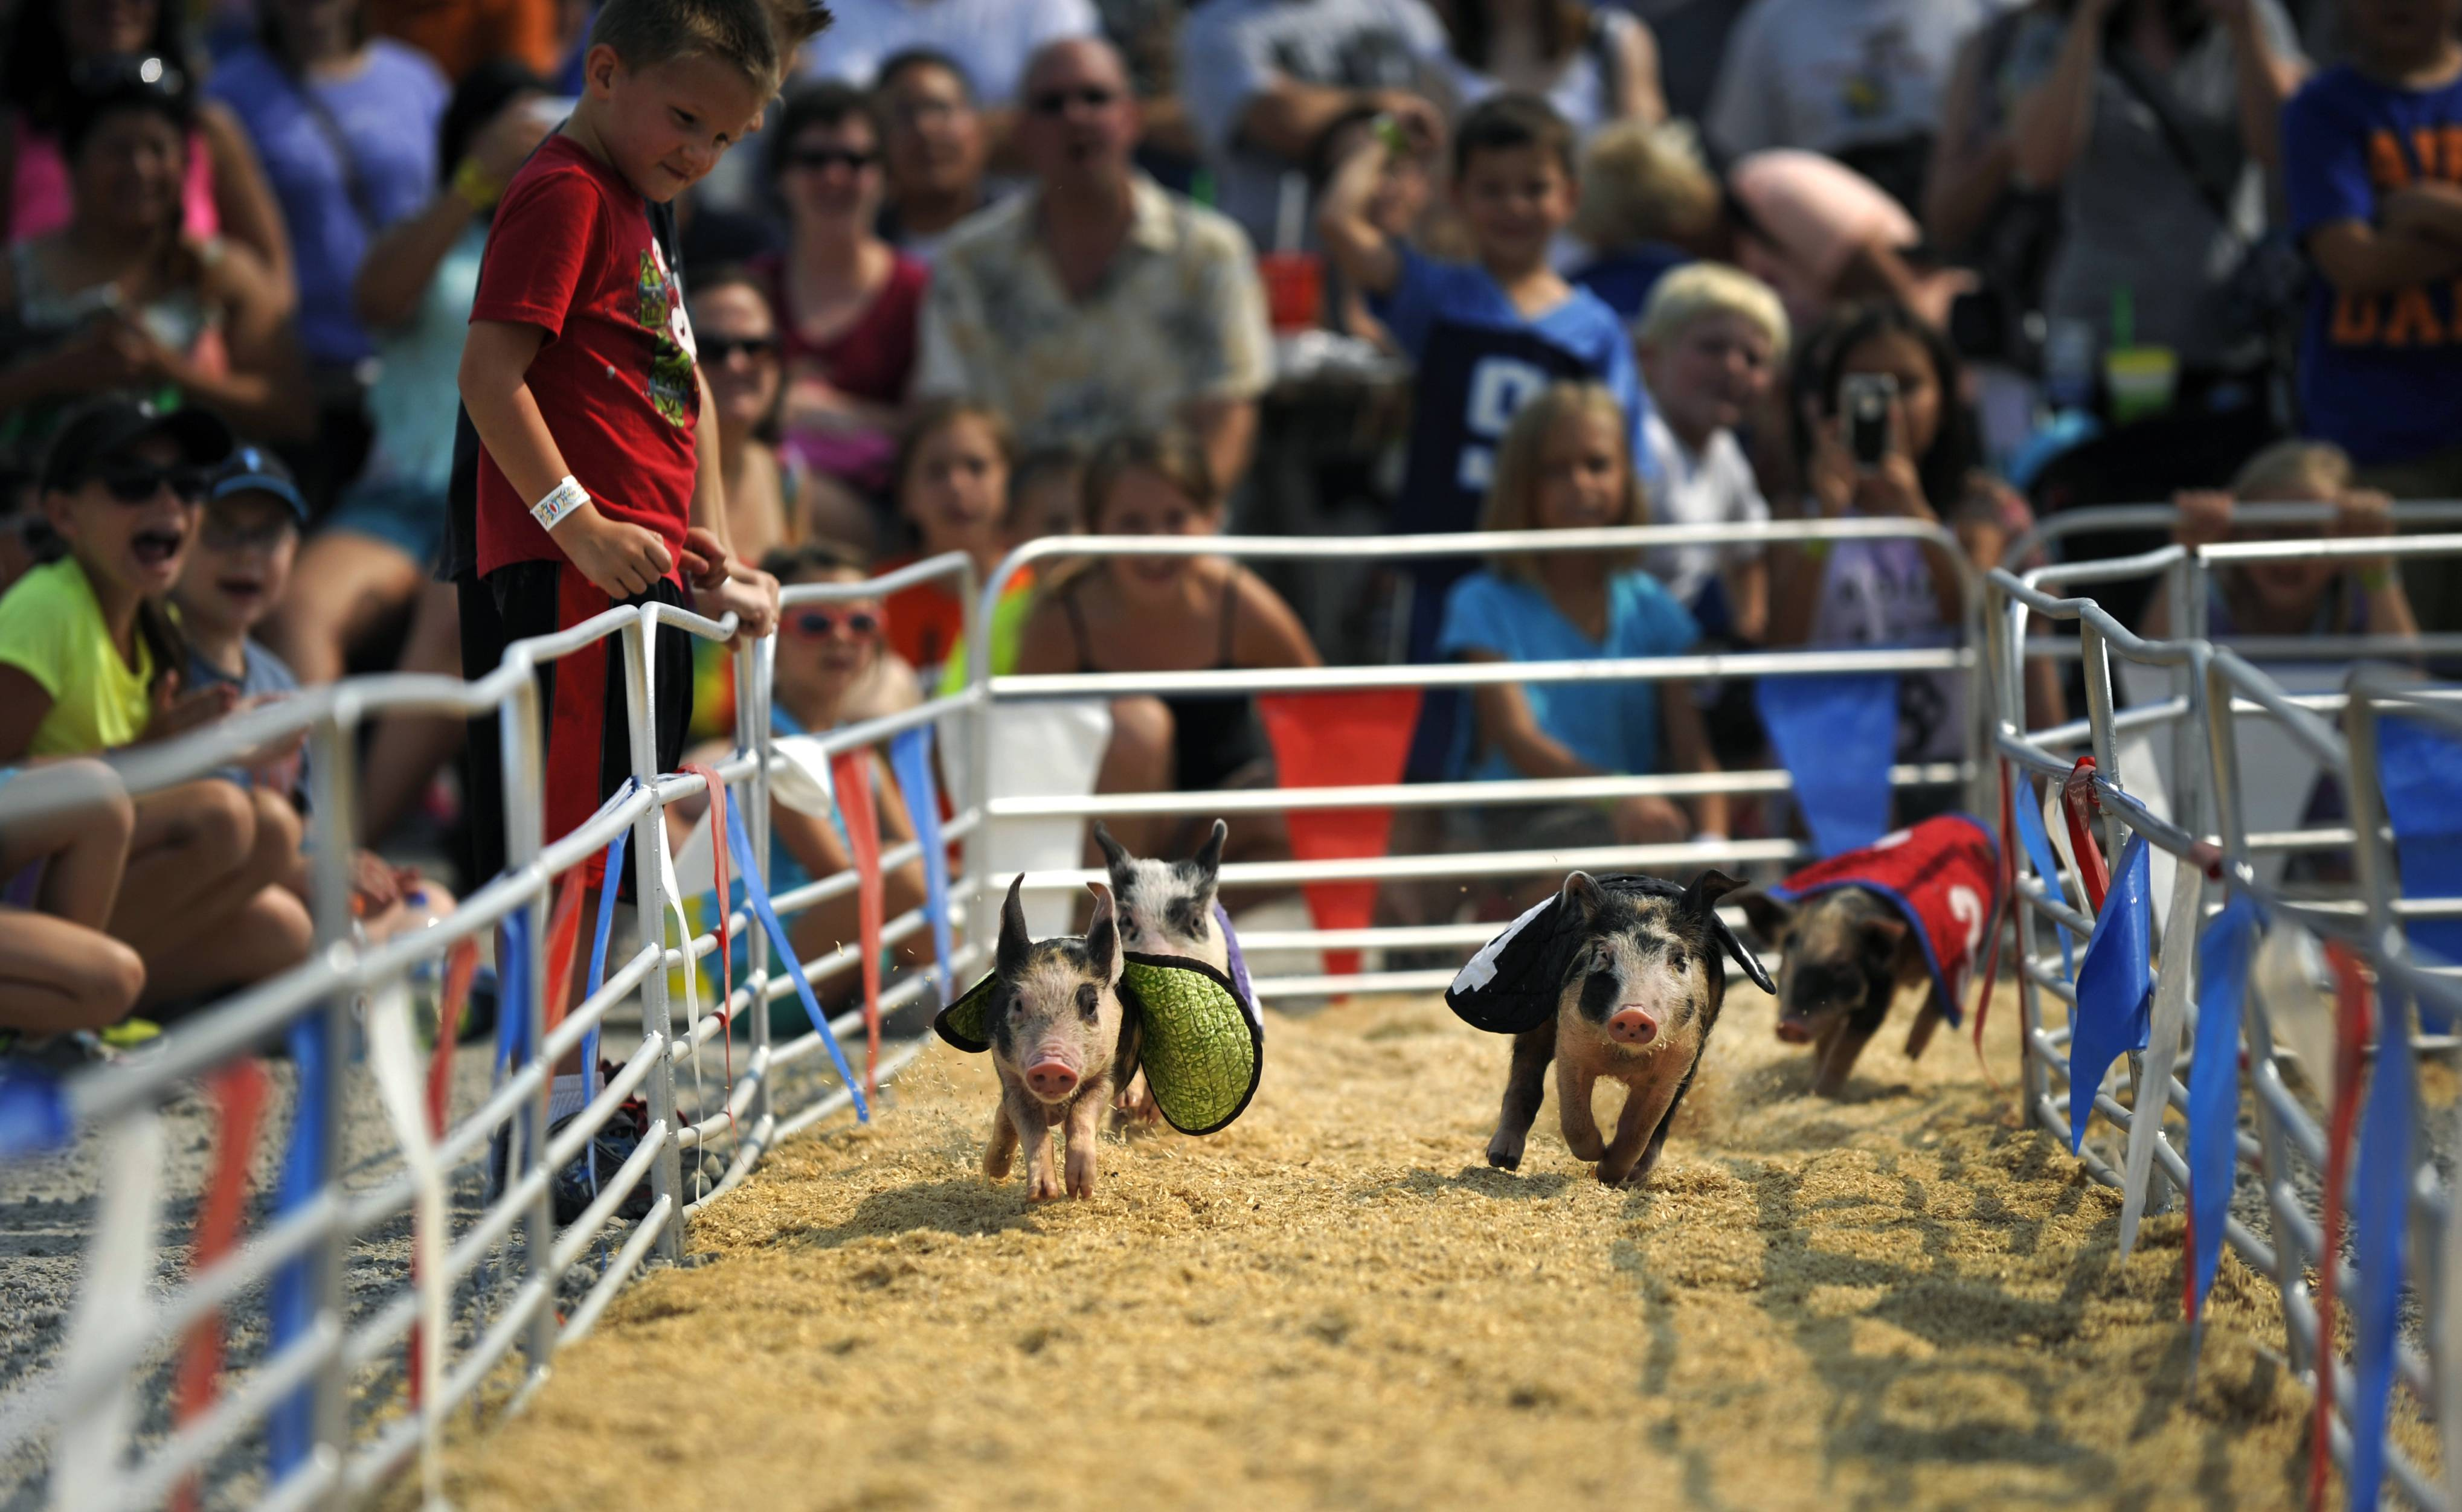 Crowds cheer as four little pigs race around the Swifty Swine ring at the Kane County Fair in St. Charles on Saturday. Each section of the crowd was responsible for cheering on one of the pigs.